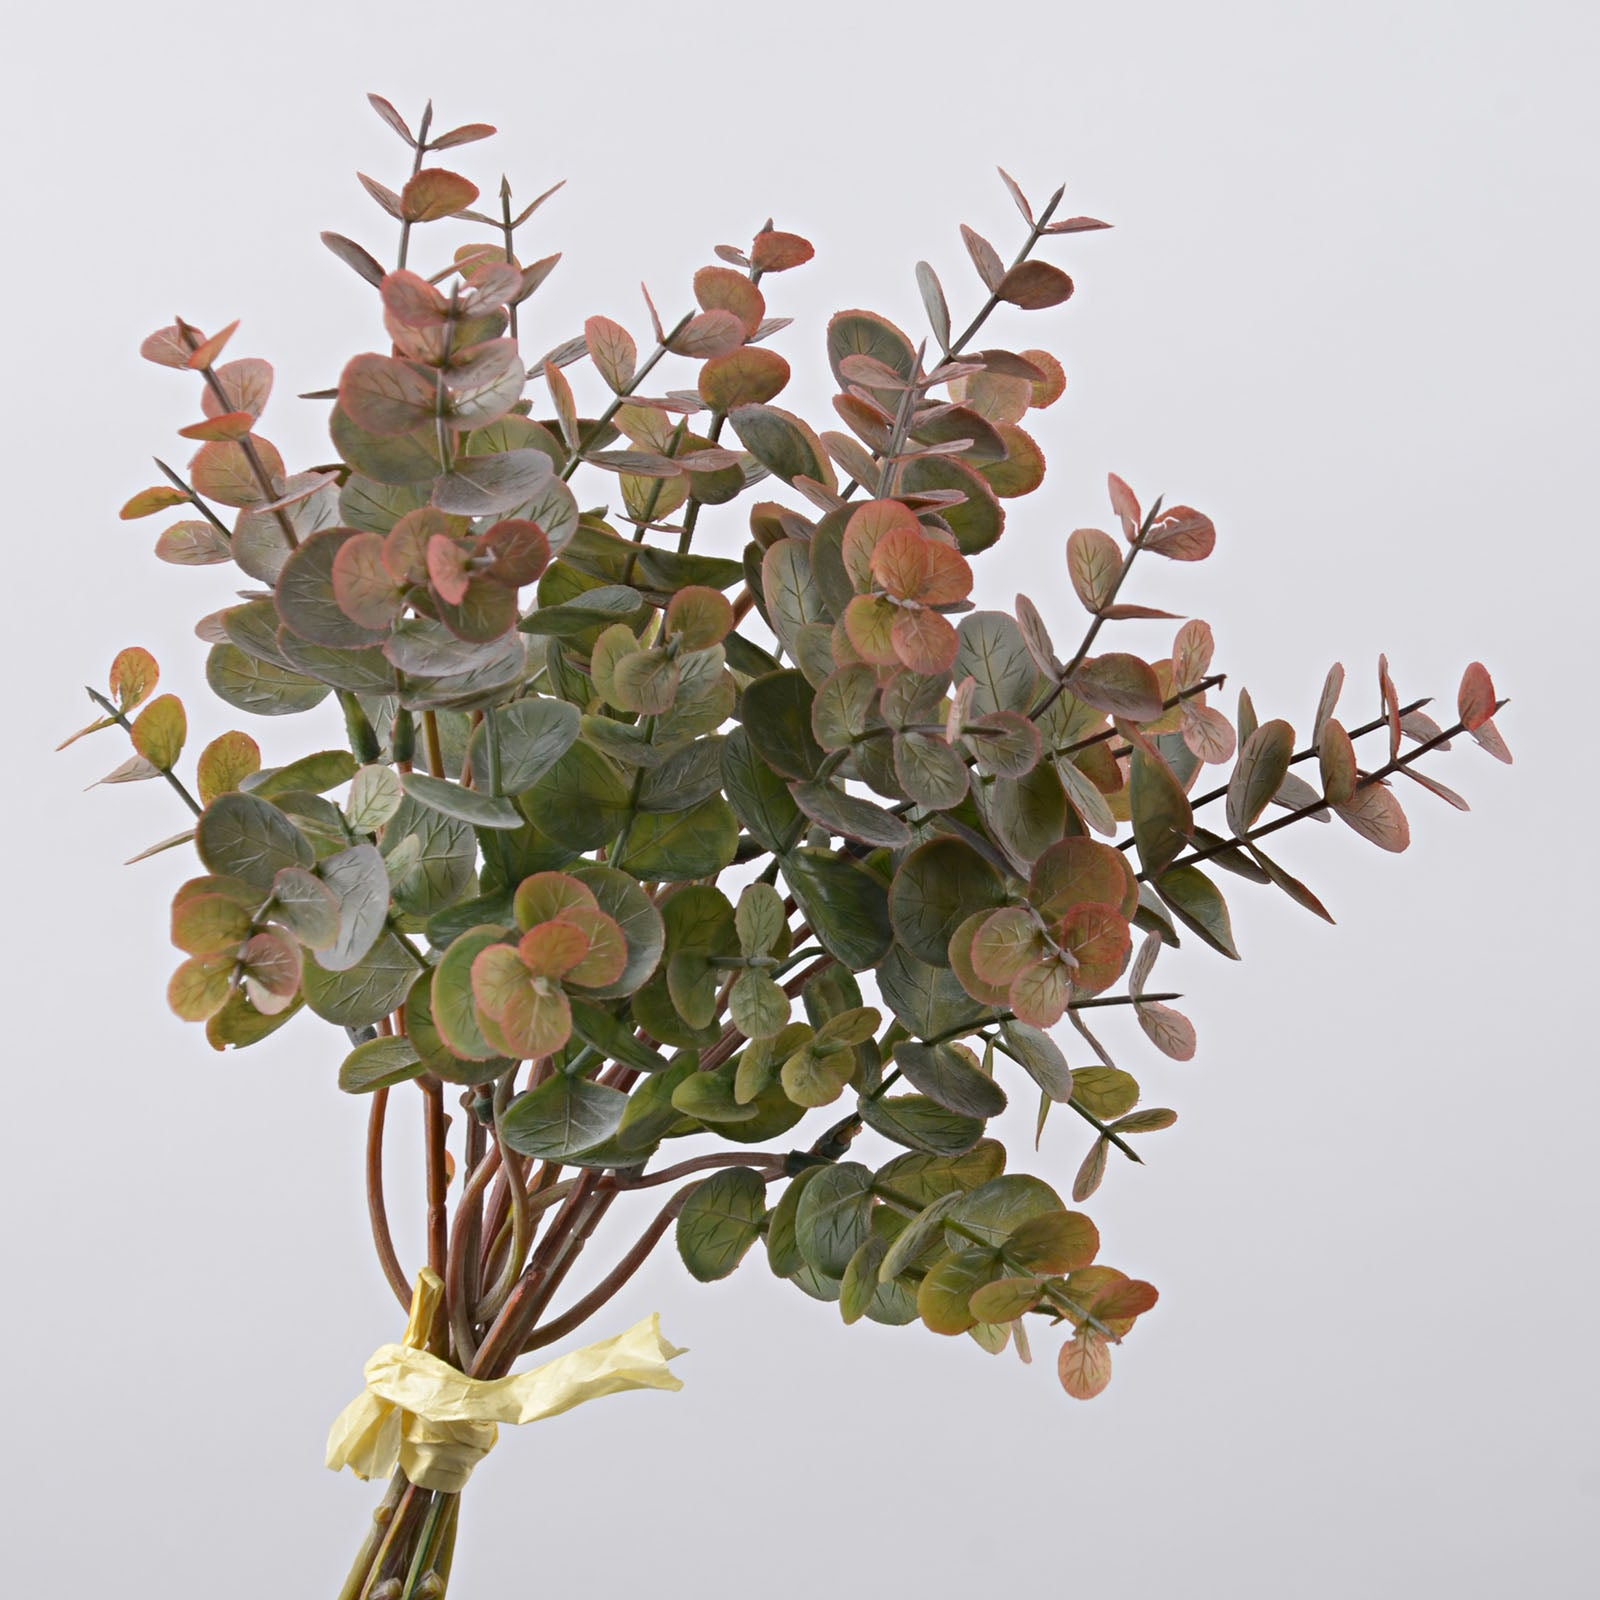 Handmade   decorative artificial plant YXBYT-B3446-OR/GR